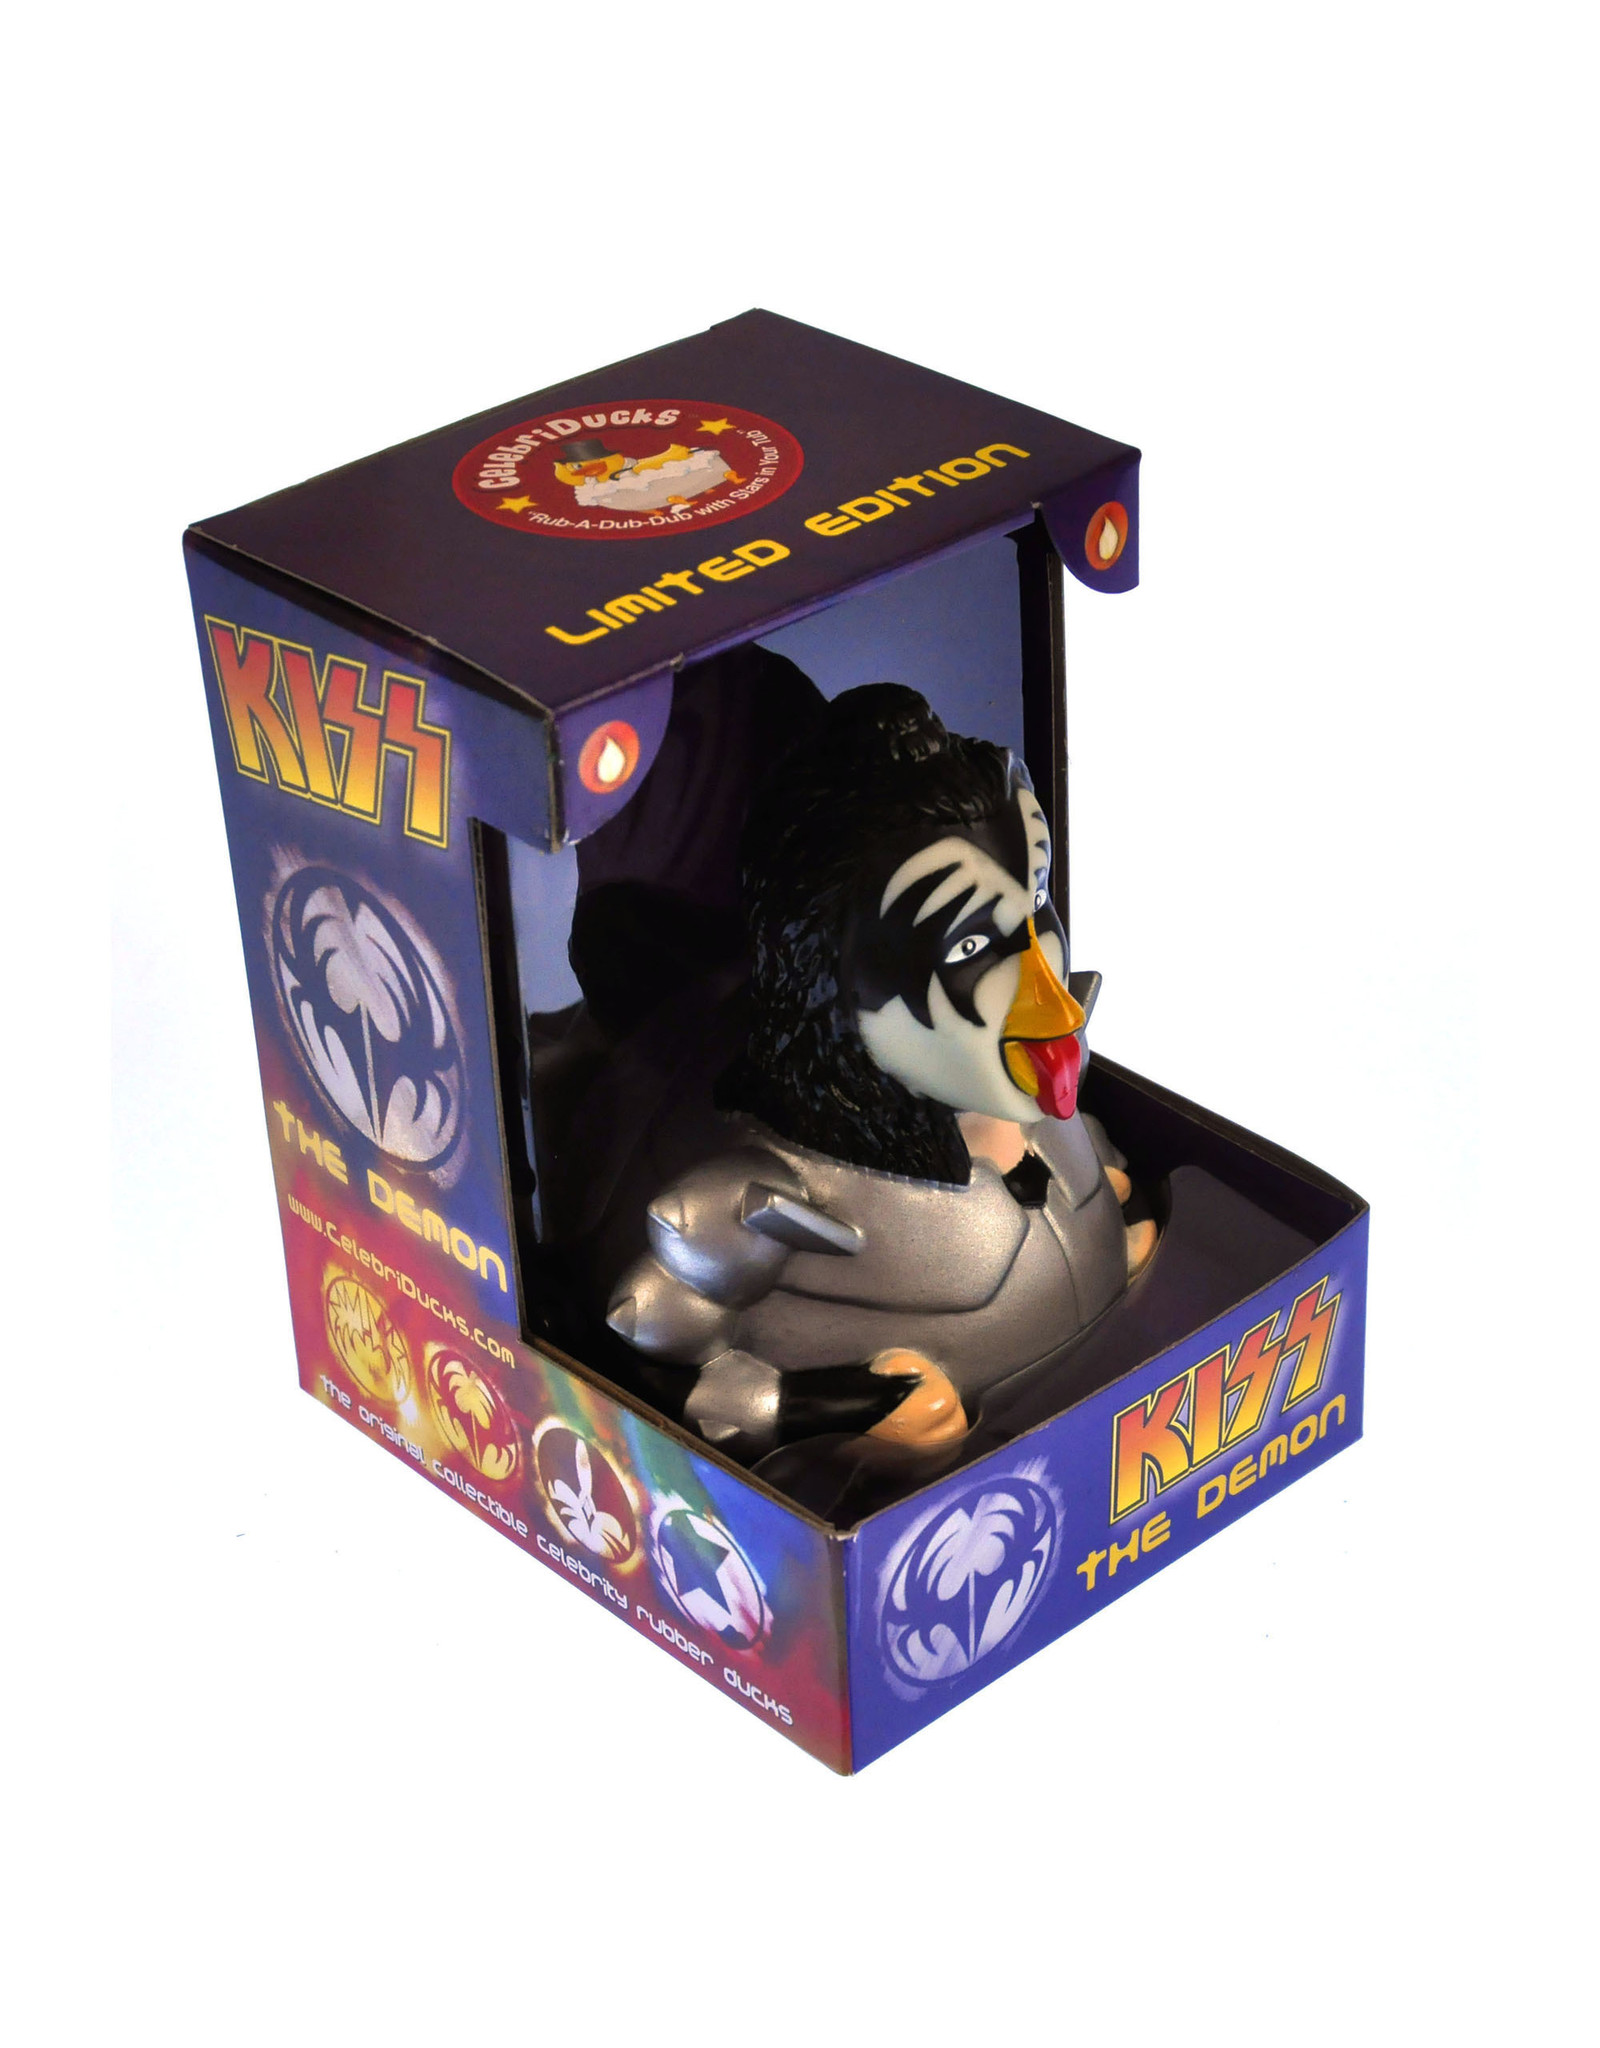 KISS - The Demon - Rubber Duck